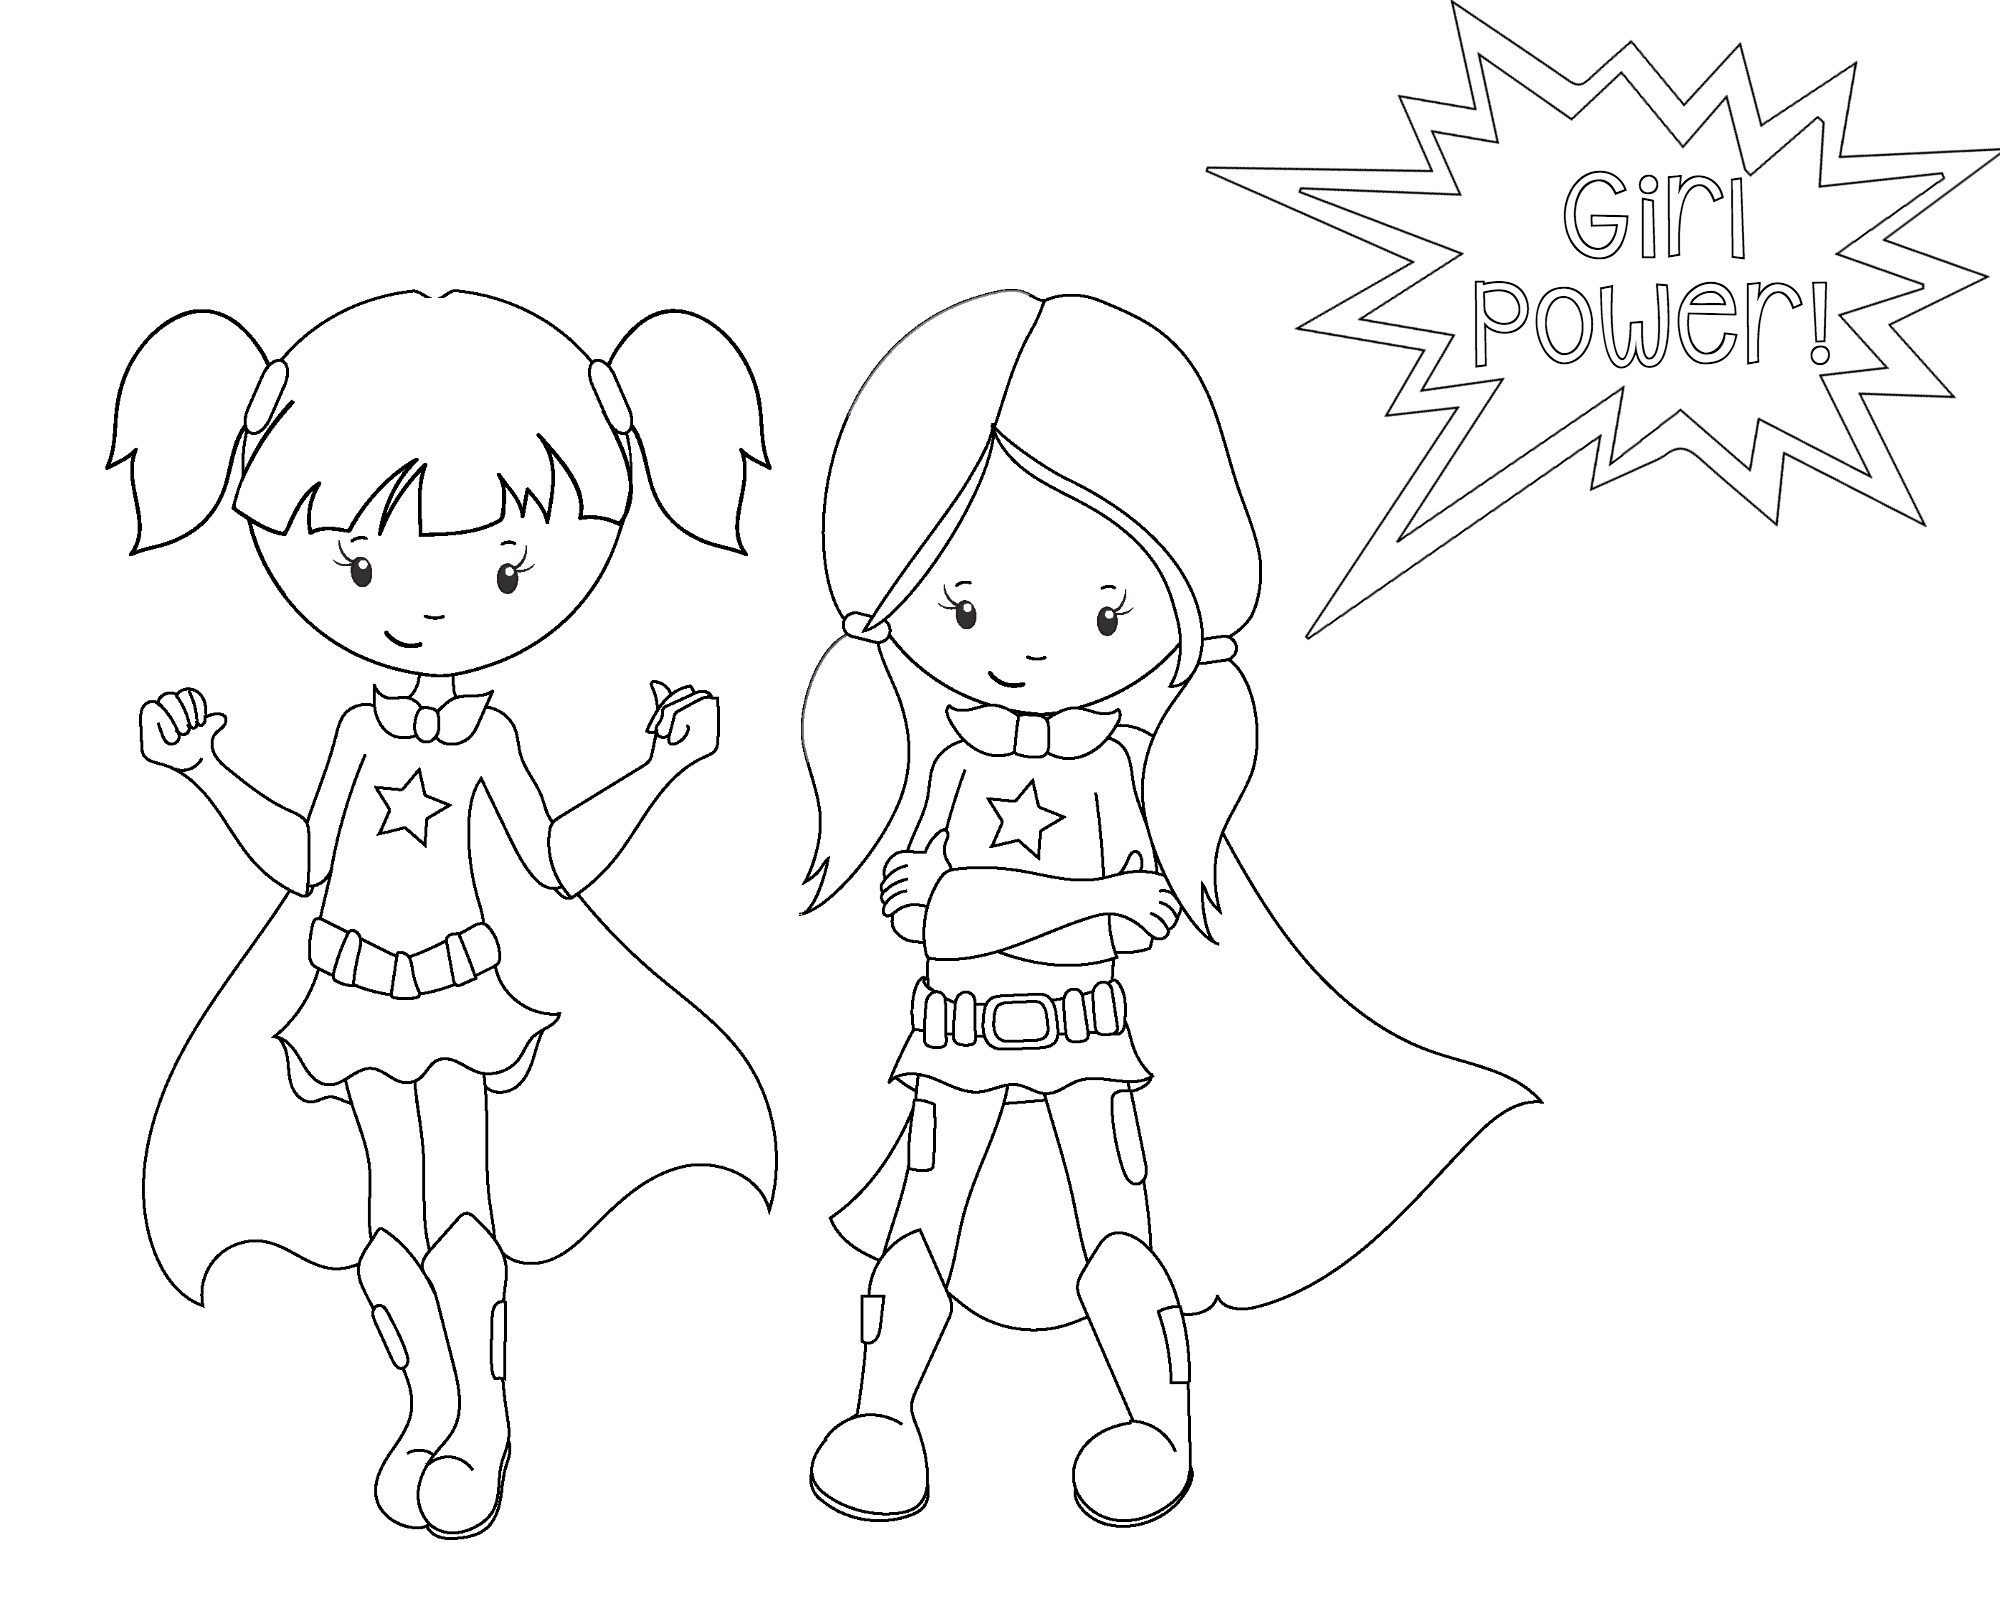 Free Printable Superhero Coloring Sheets for Kids - Crazy Little ...